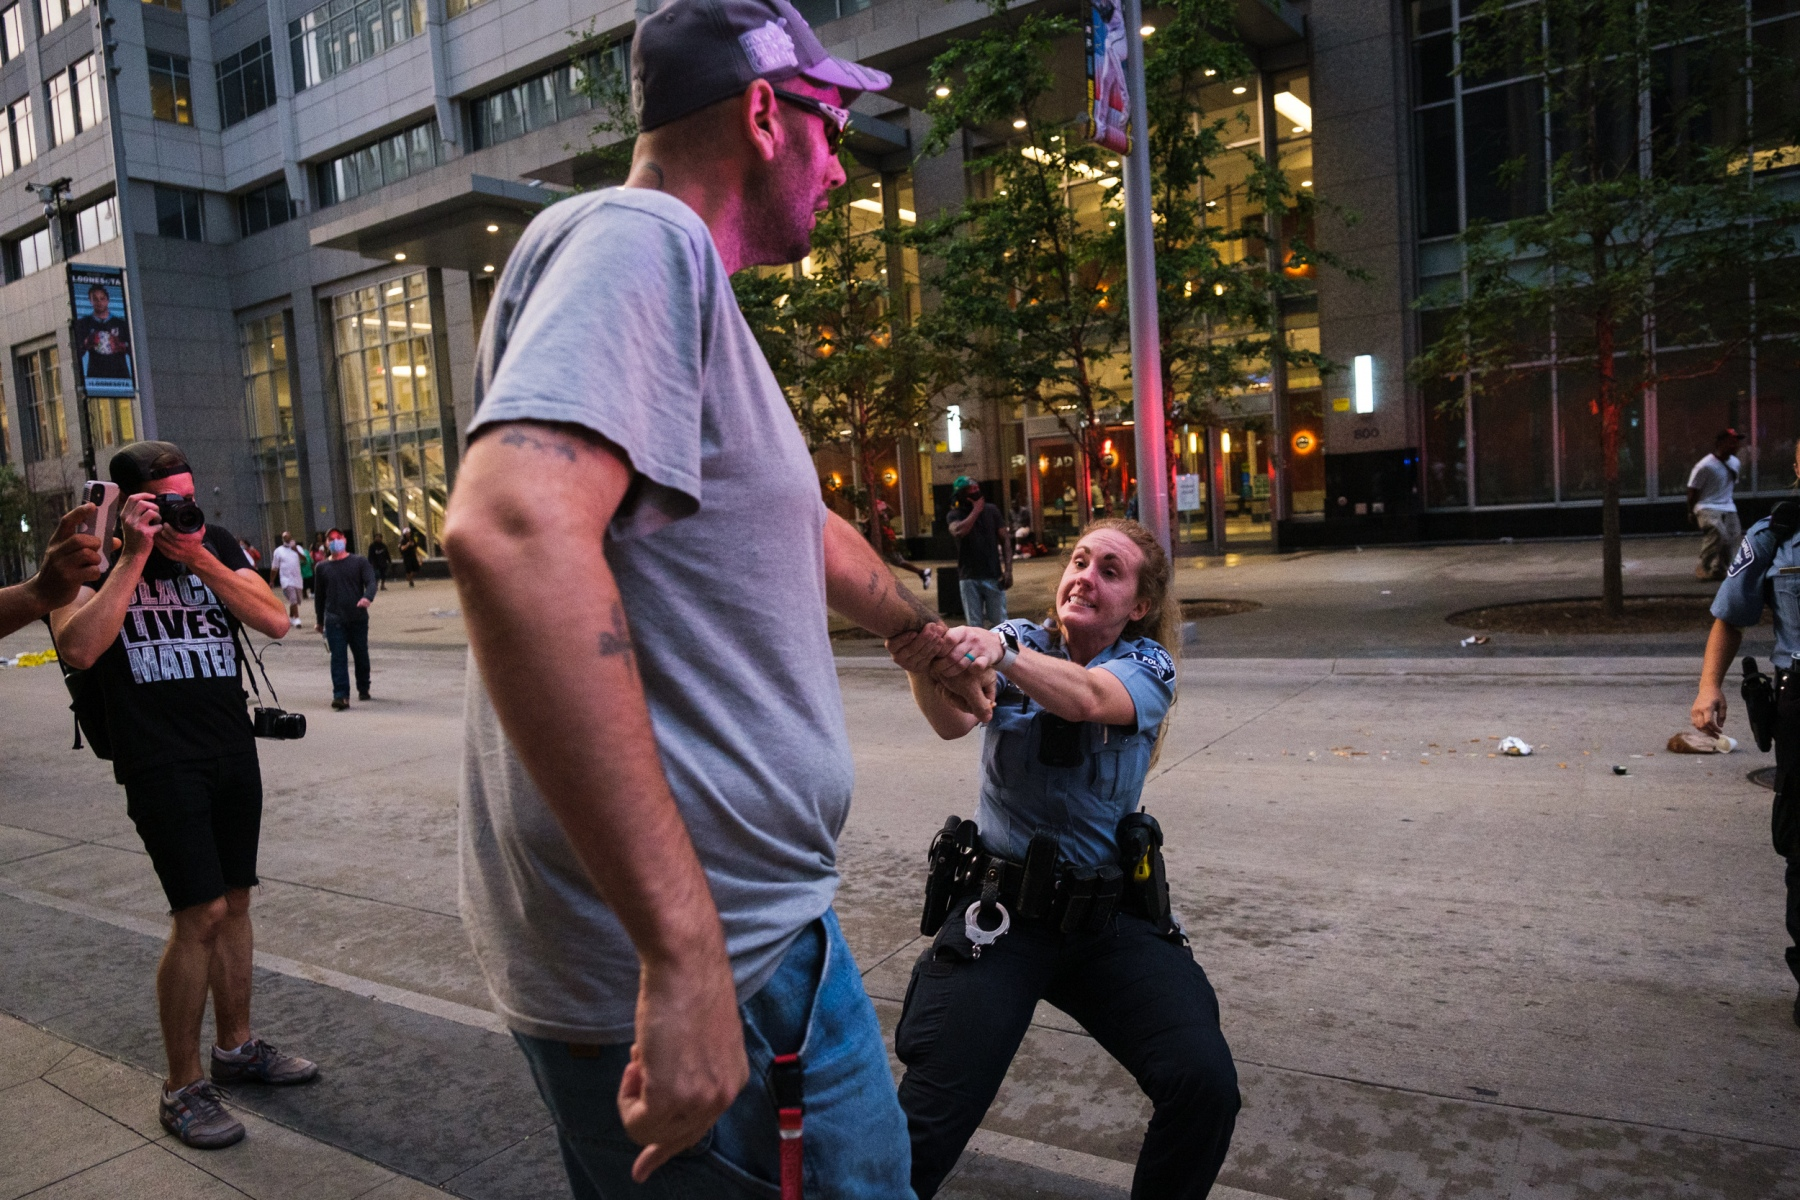 As protestors throw trash cans and other debris into the street in an attempt to block squad cars from leaving the area, a Minneapolis police officer attempts to arrest a bystander on August 26, 2020.